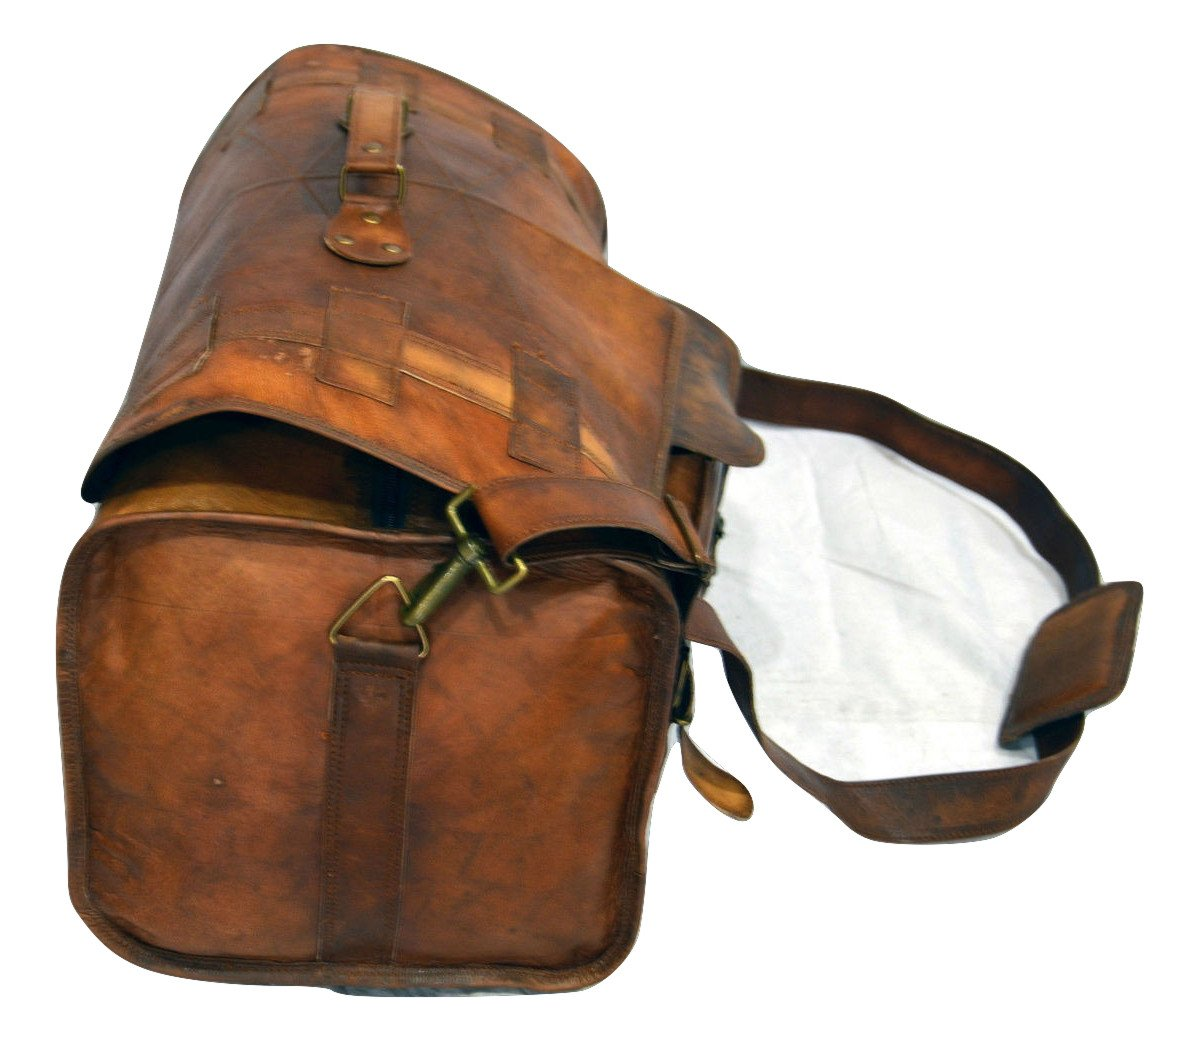 Urban Dezire Leather Duffel Travel Gym Overnight Weekend Leather Bag Sports Cabin by Urban Dezire (Image #2)